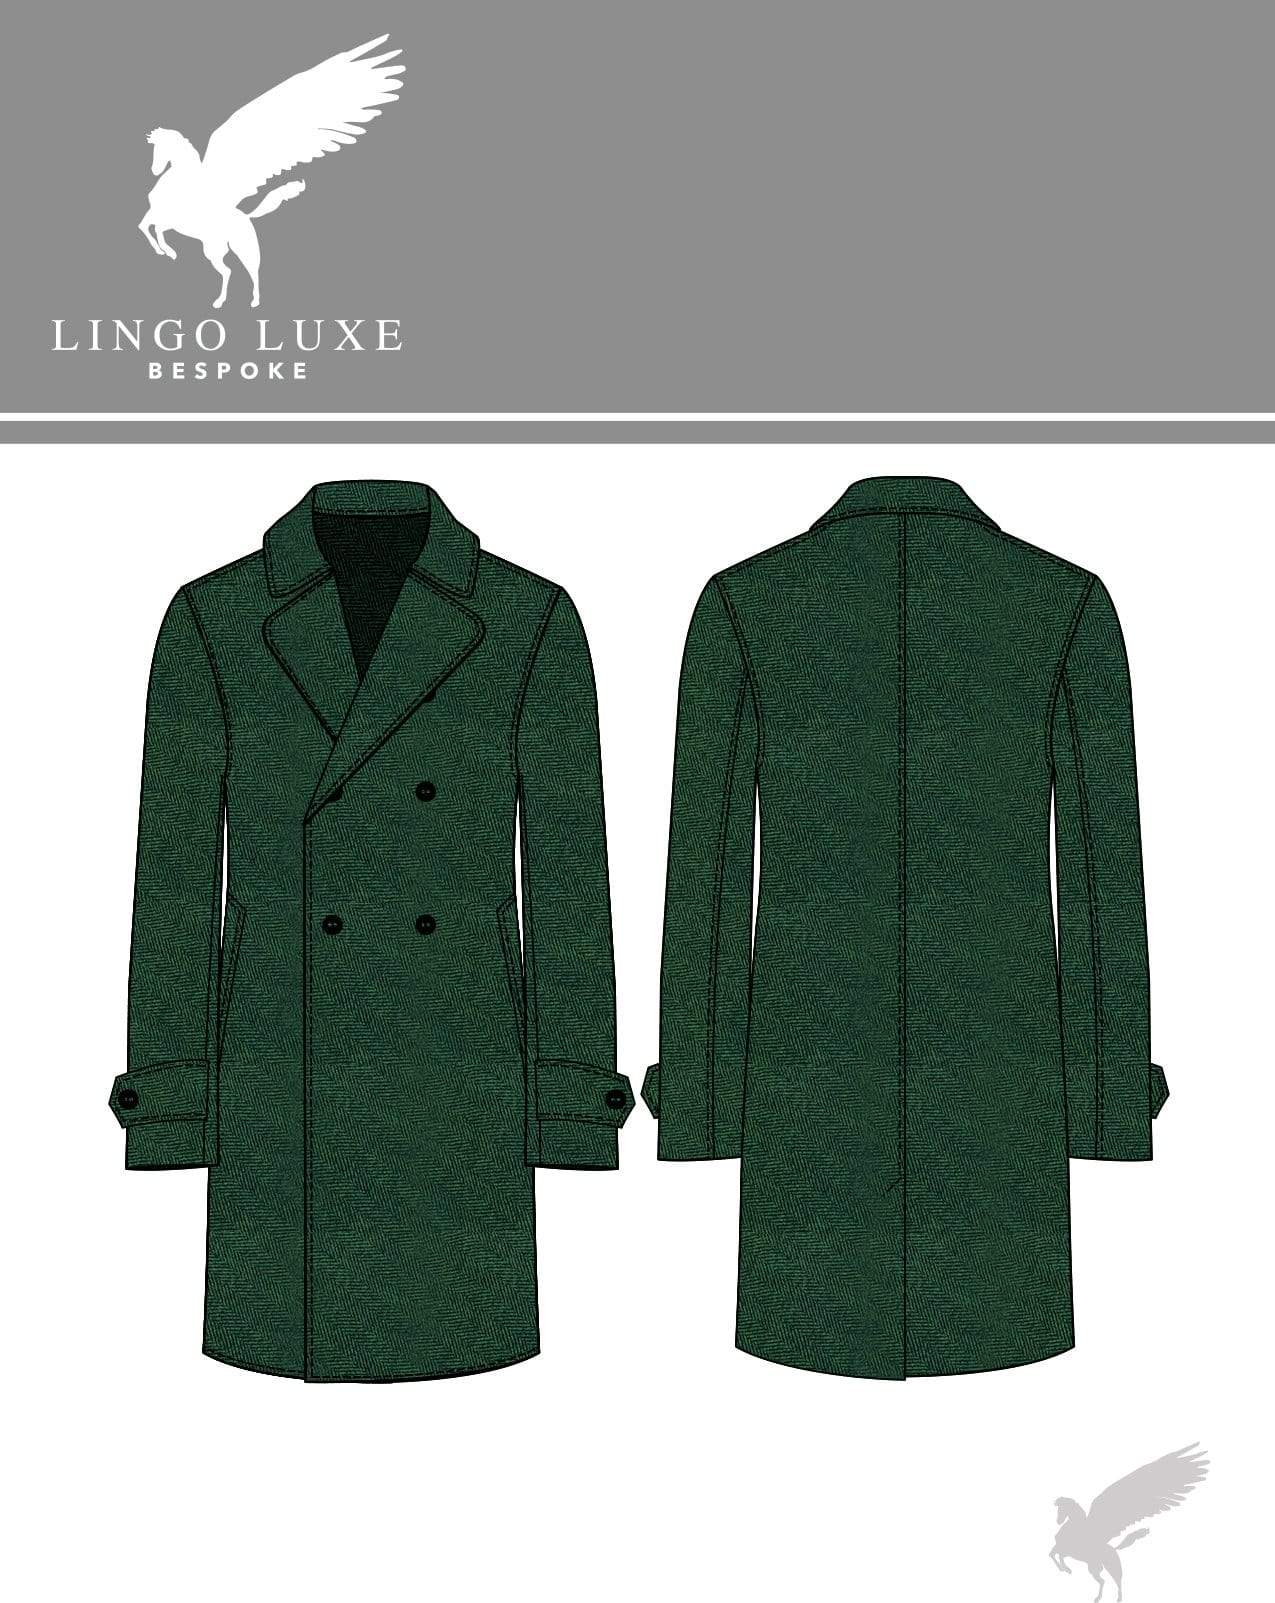 Outerwear | Lingo Luxe The Stately Overcoat | Hunter Herring-Lingo Luxe Bespoke